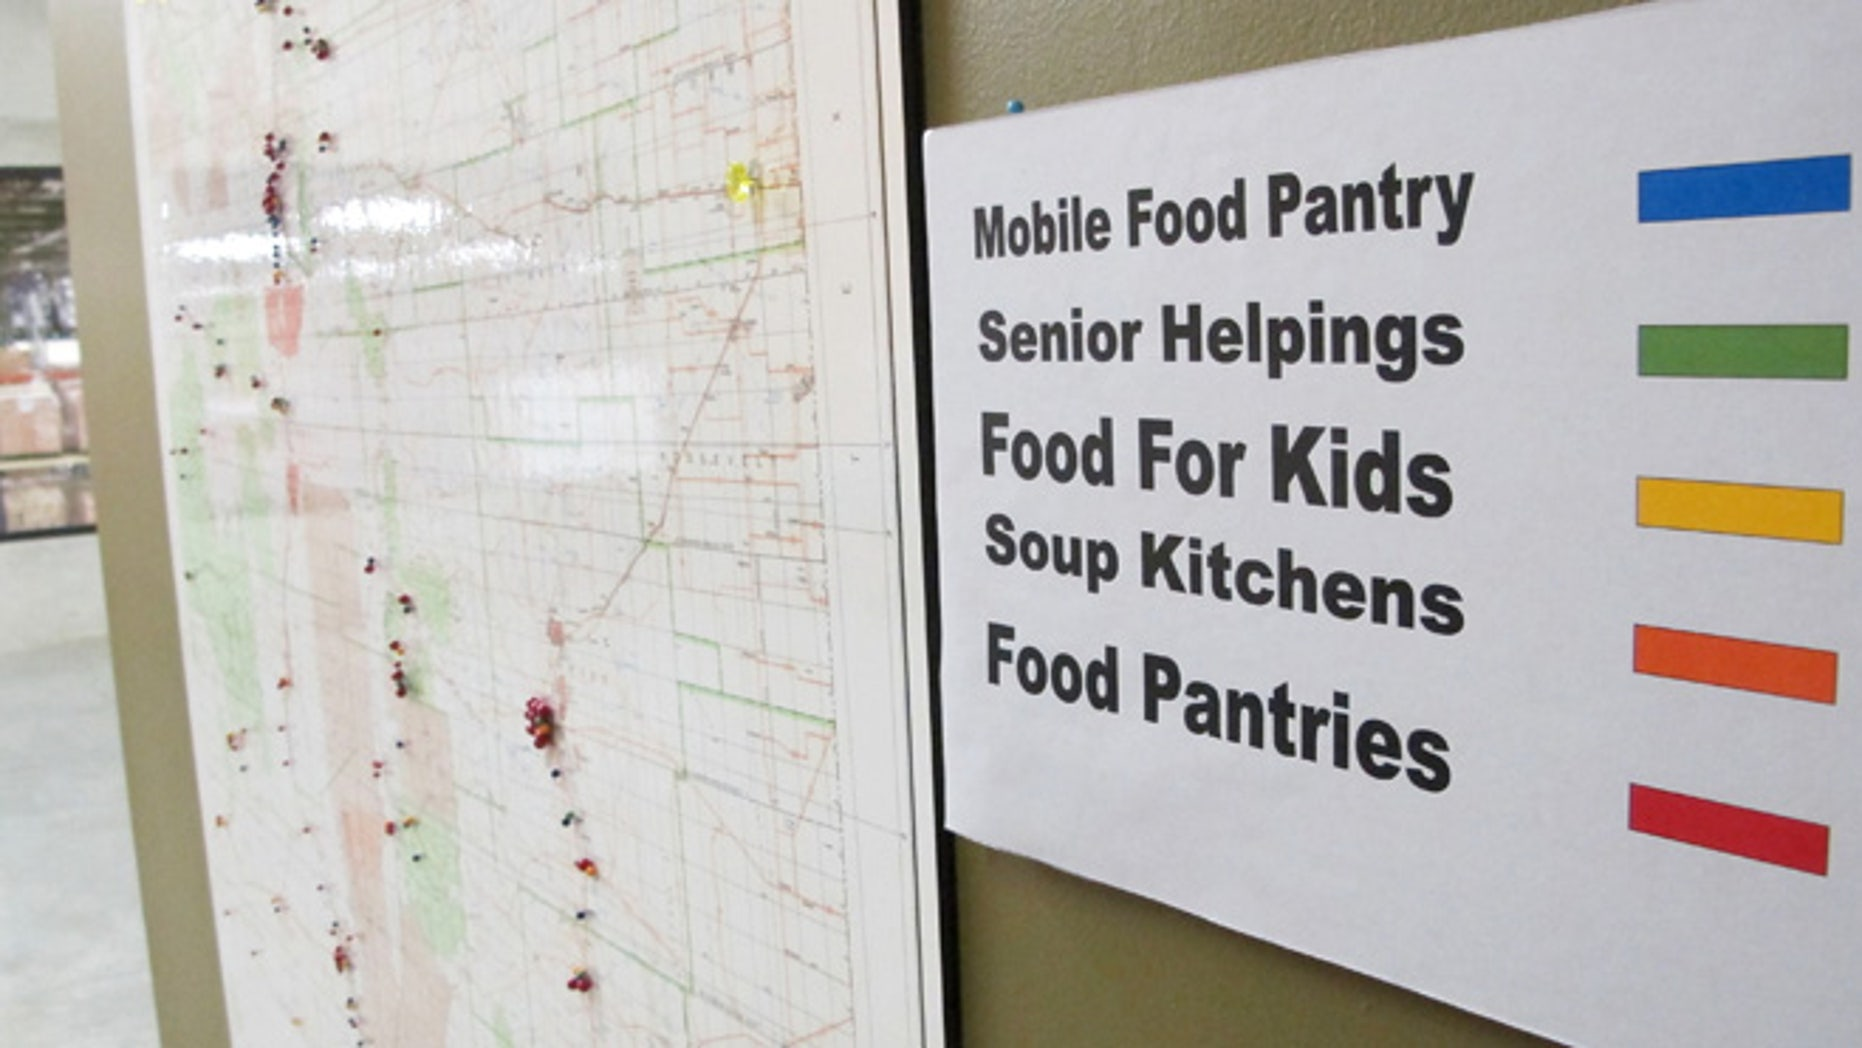 June 21, 2013: This image shows a map at Roadrunner Food Bank in Albuquerque, N.M., that depicts food distribution points across New Mexico. An annual survey released by the Annie E. Casey Foundation shows the number of children living in poverty increased to 23 percent in 2011. The survey ranks New Mexico as the worst in the nation when it comes to child well-being.